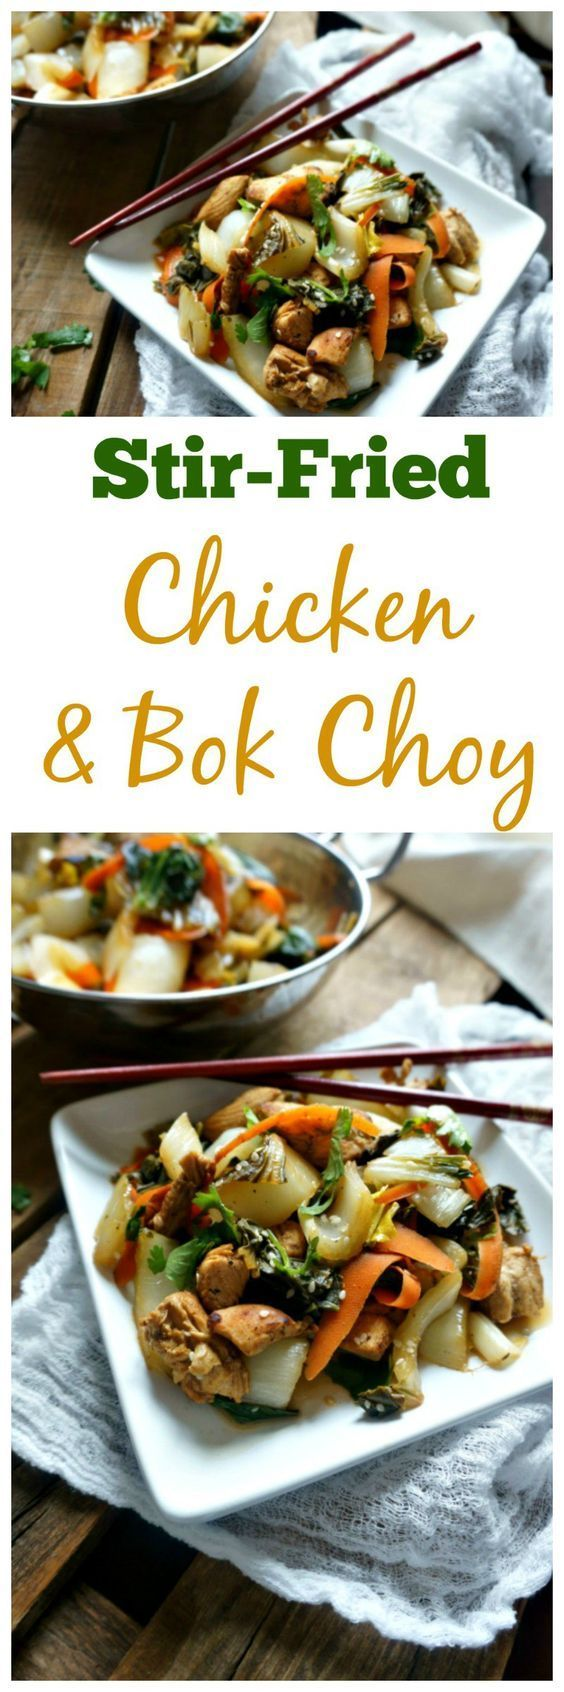 Stir-Fried Chicken and Bok Choy | Recipe | Sauces, Spicy ...